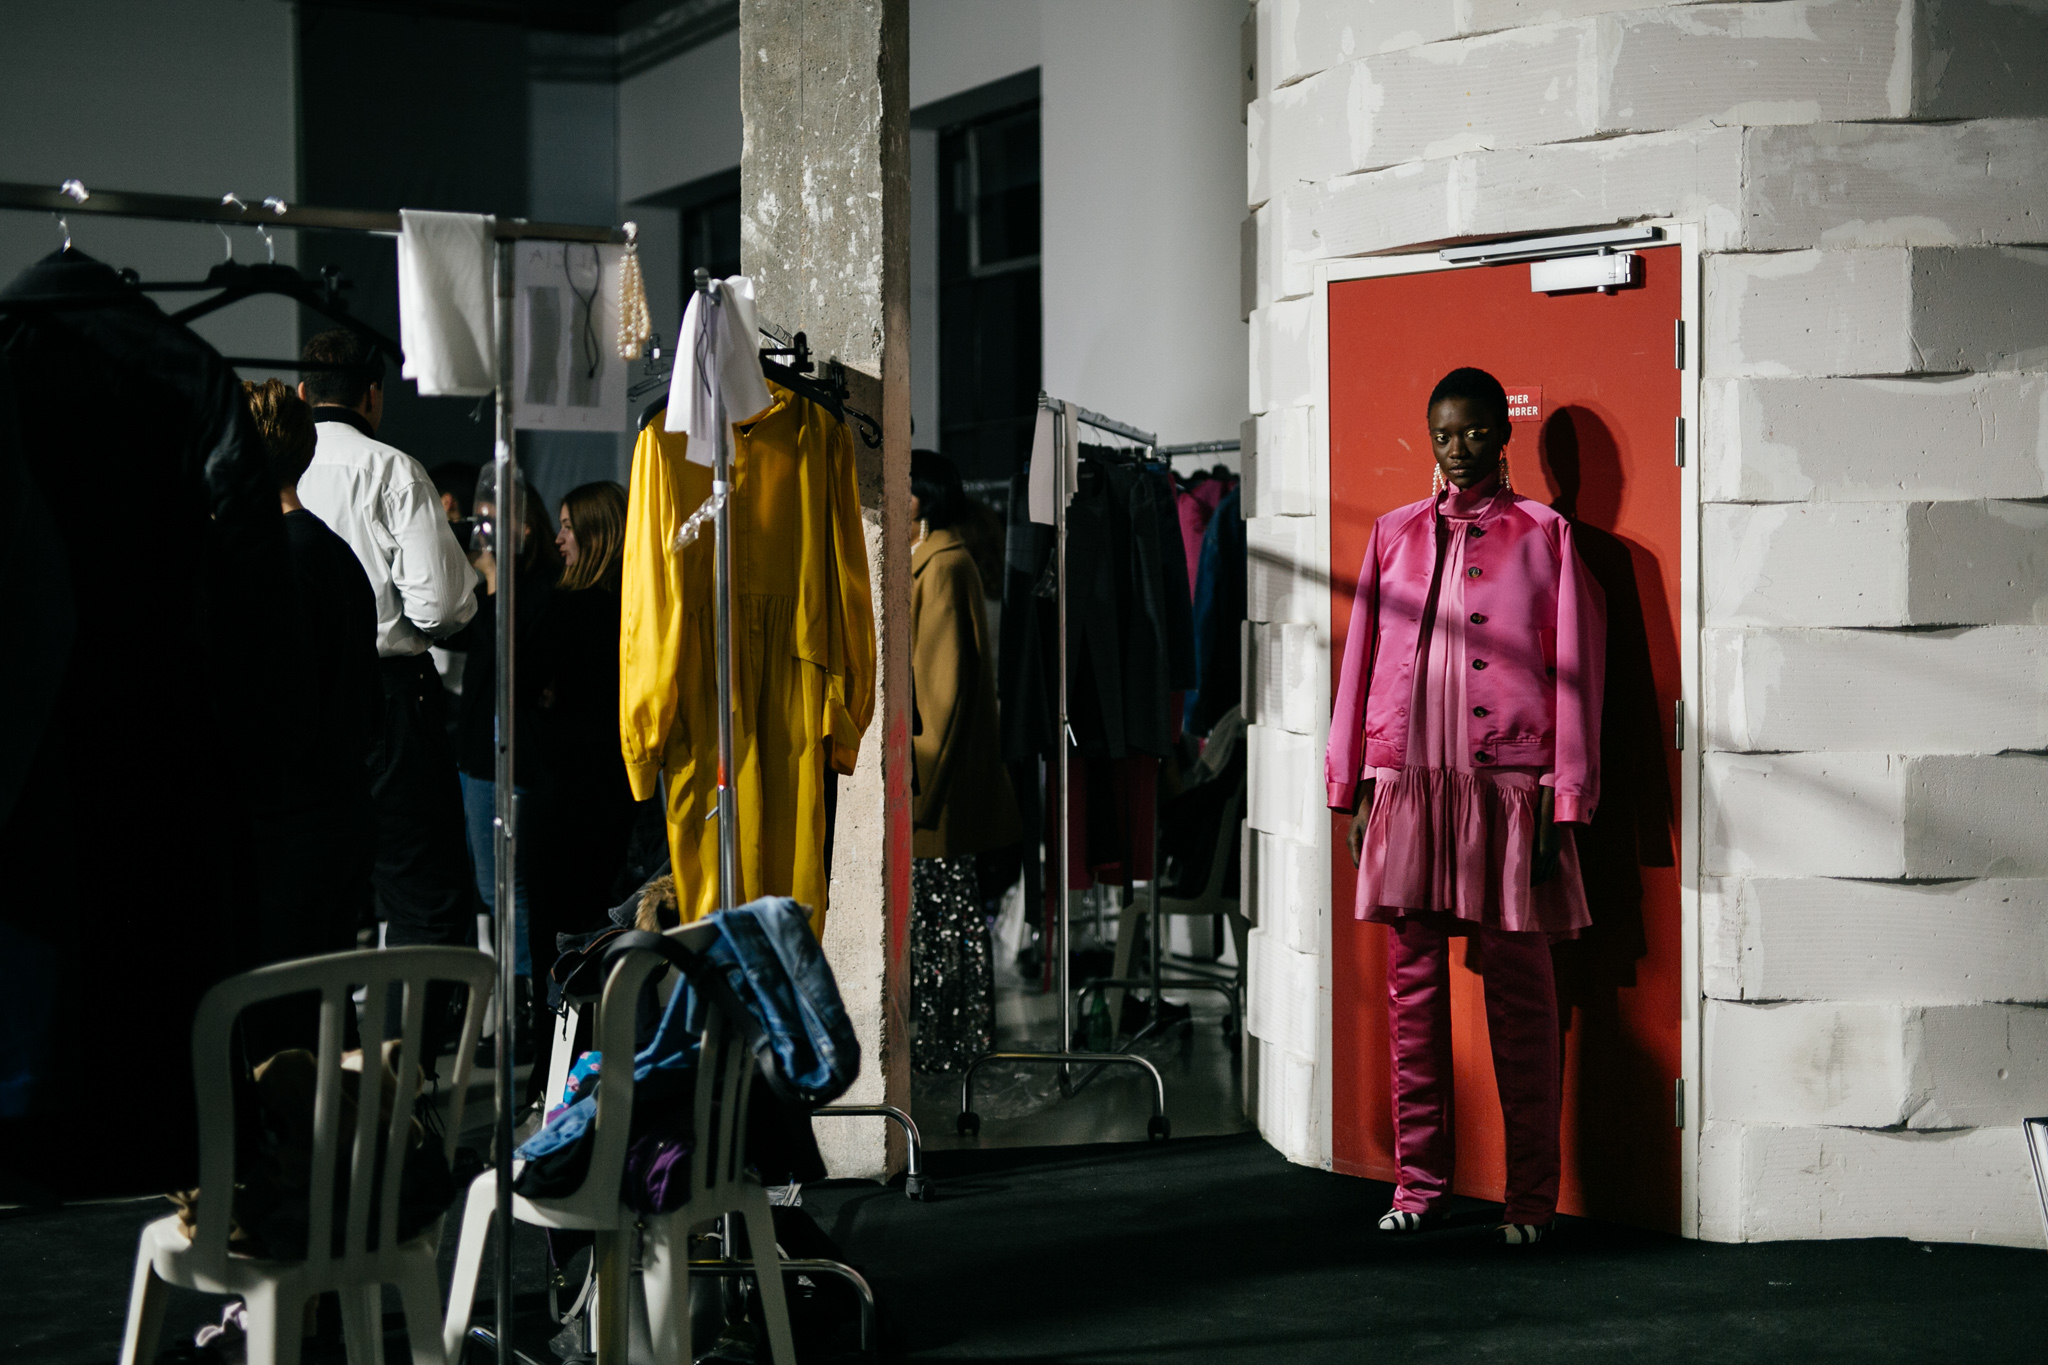 backstage-at-lutz-huelle-rtw-fall-2020-pfw-014